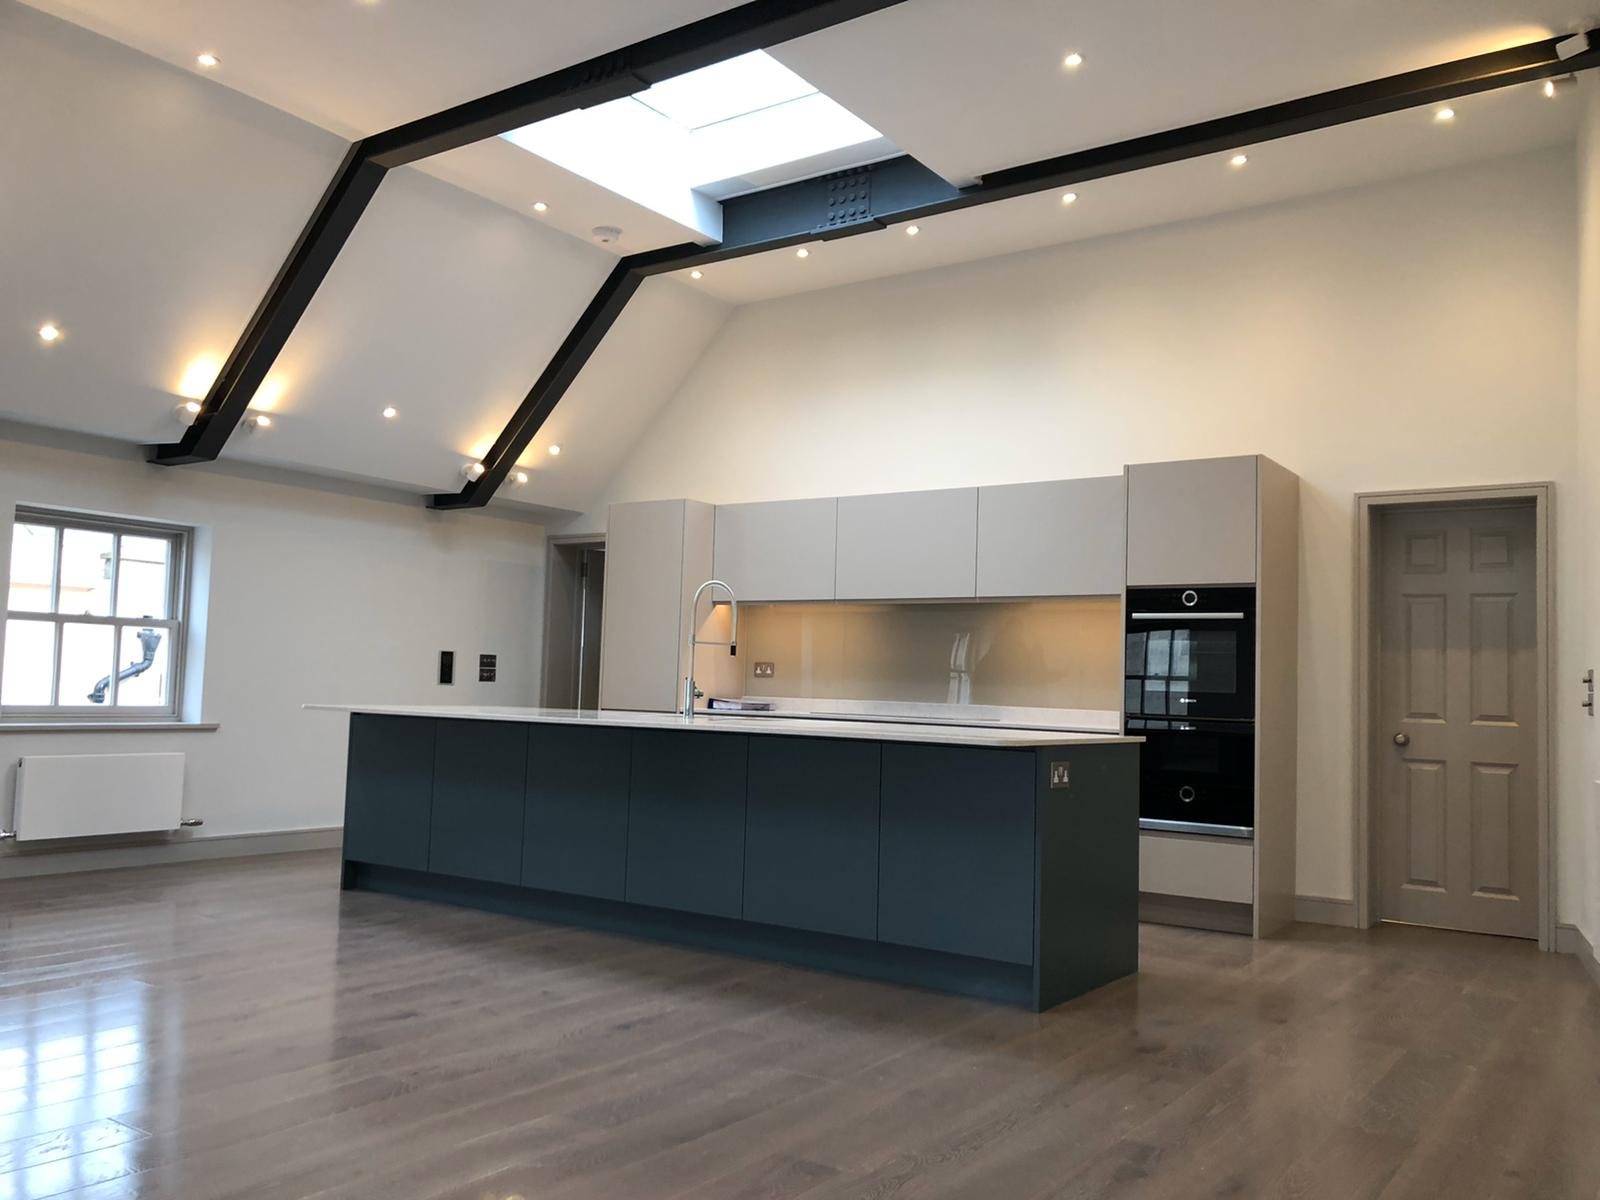 Residential conversion image